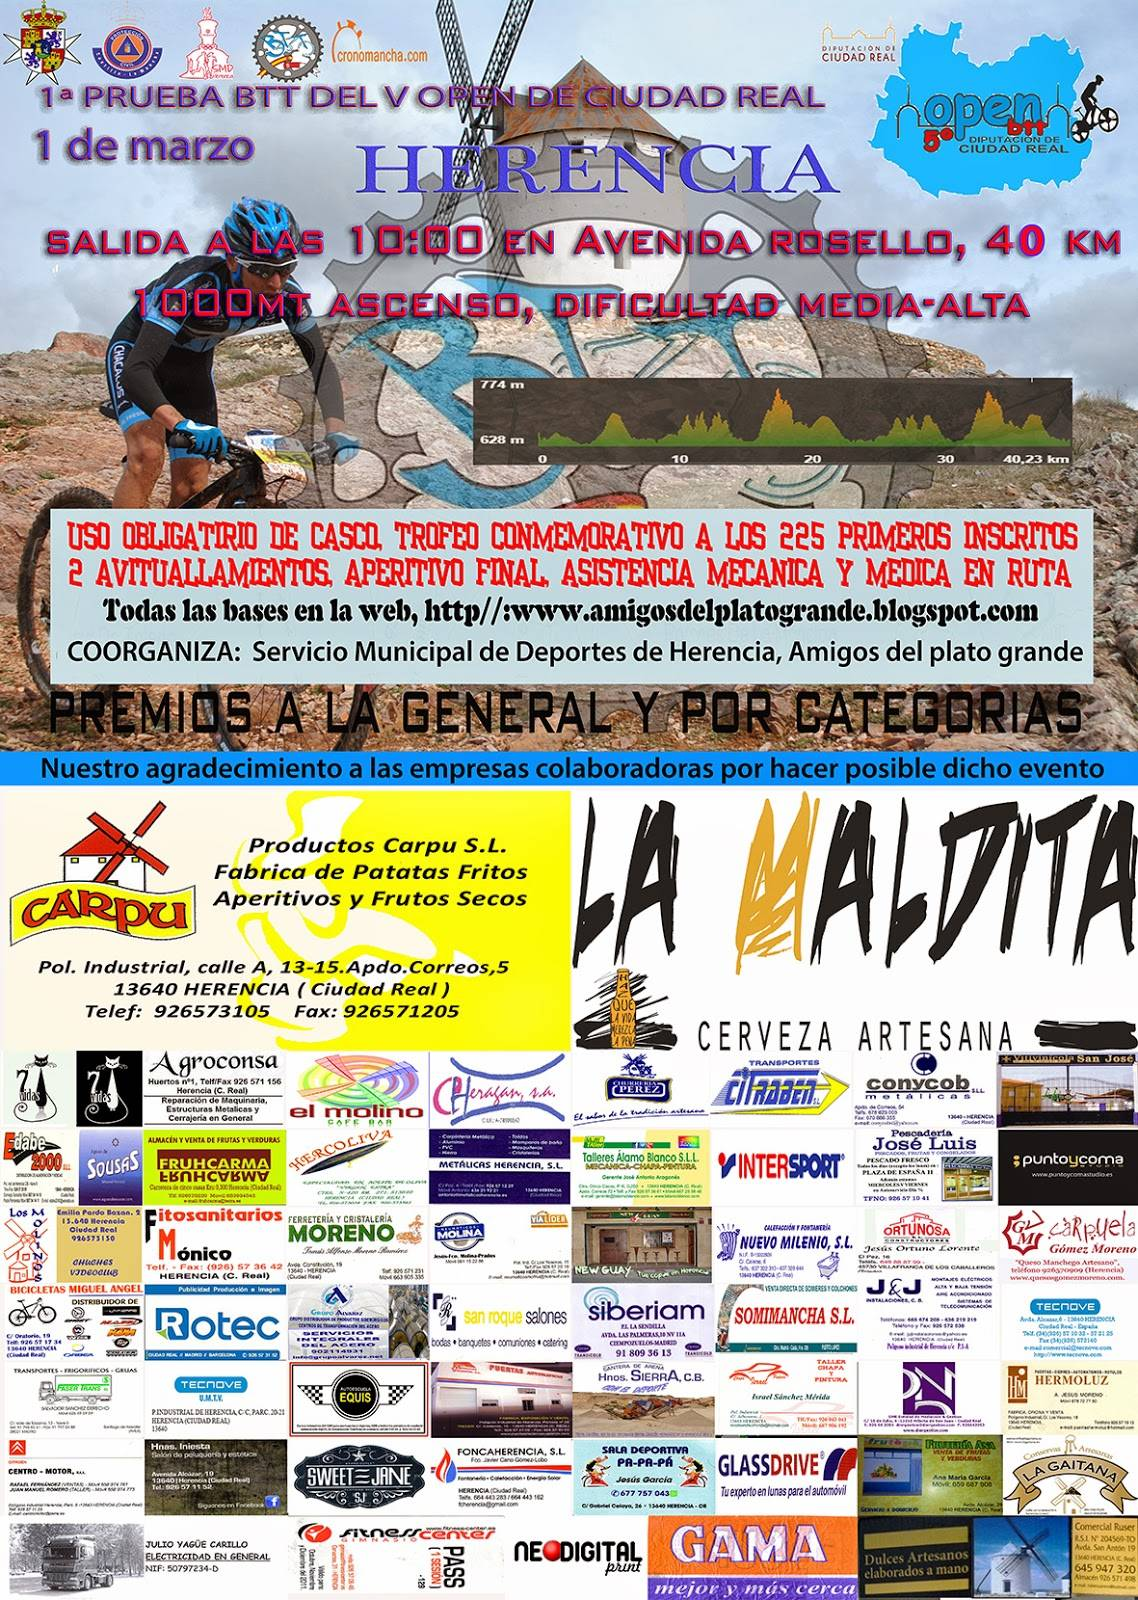 cartel open ciudad real en herencia